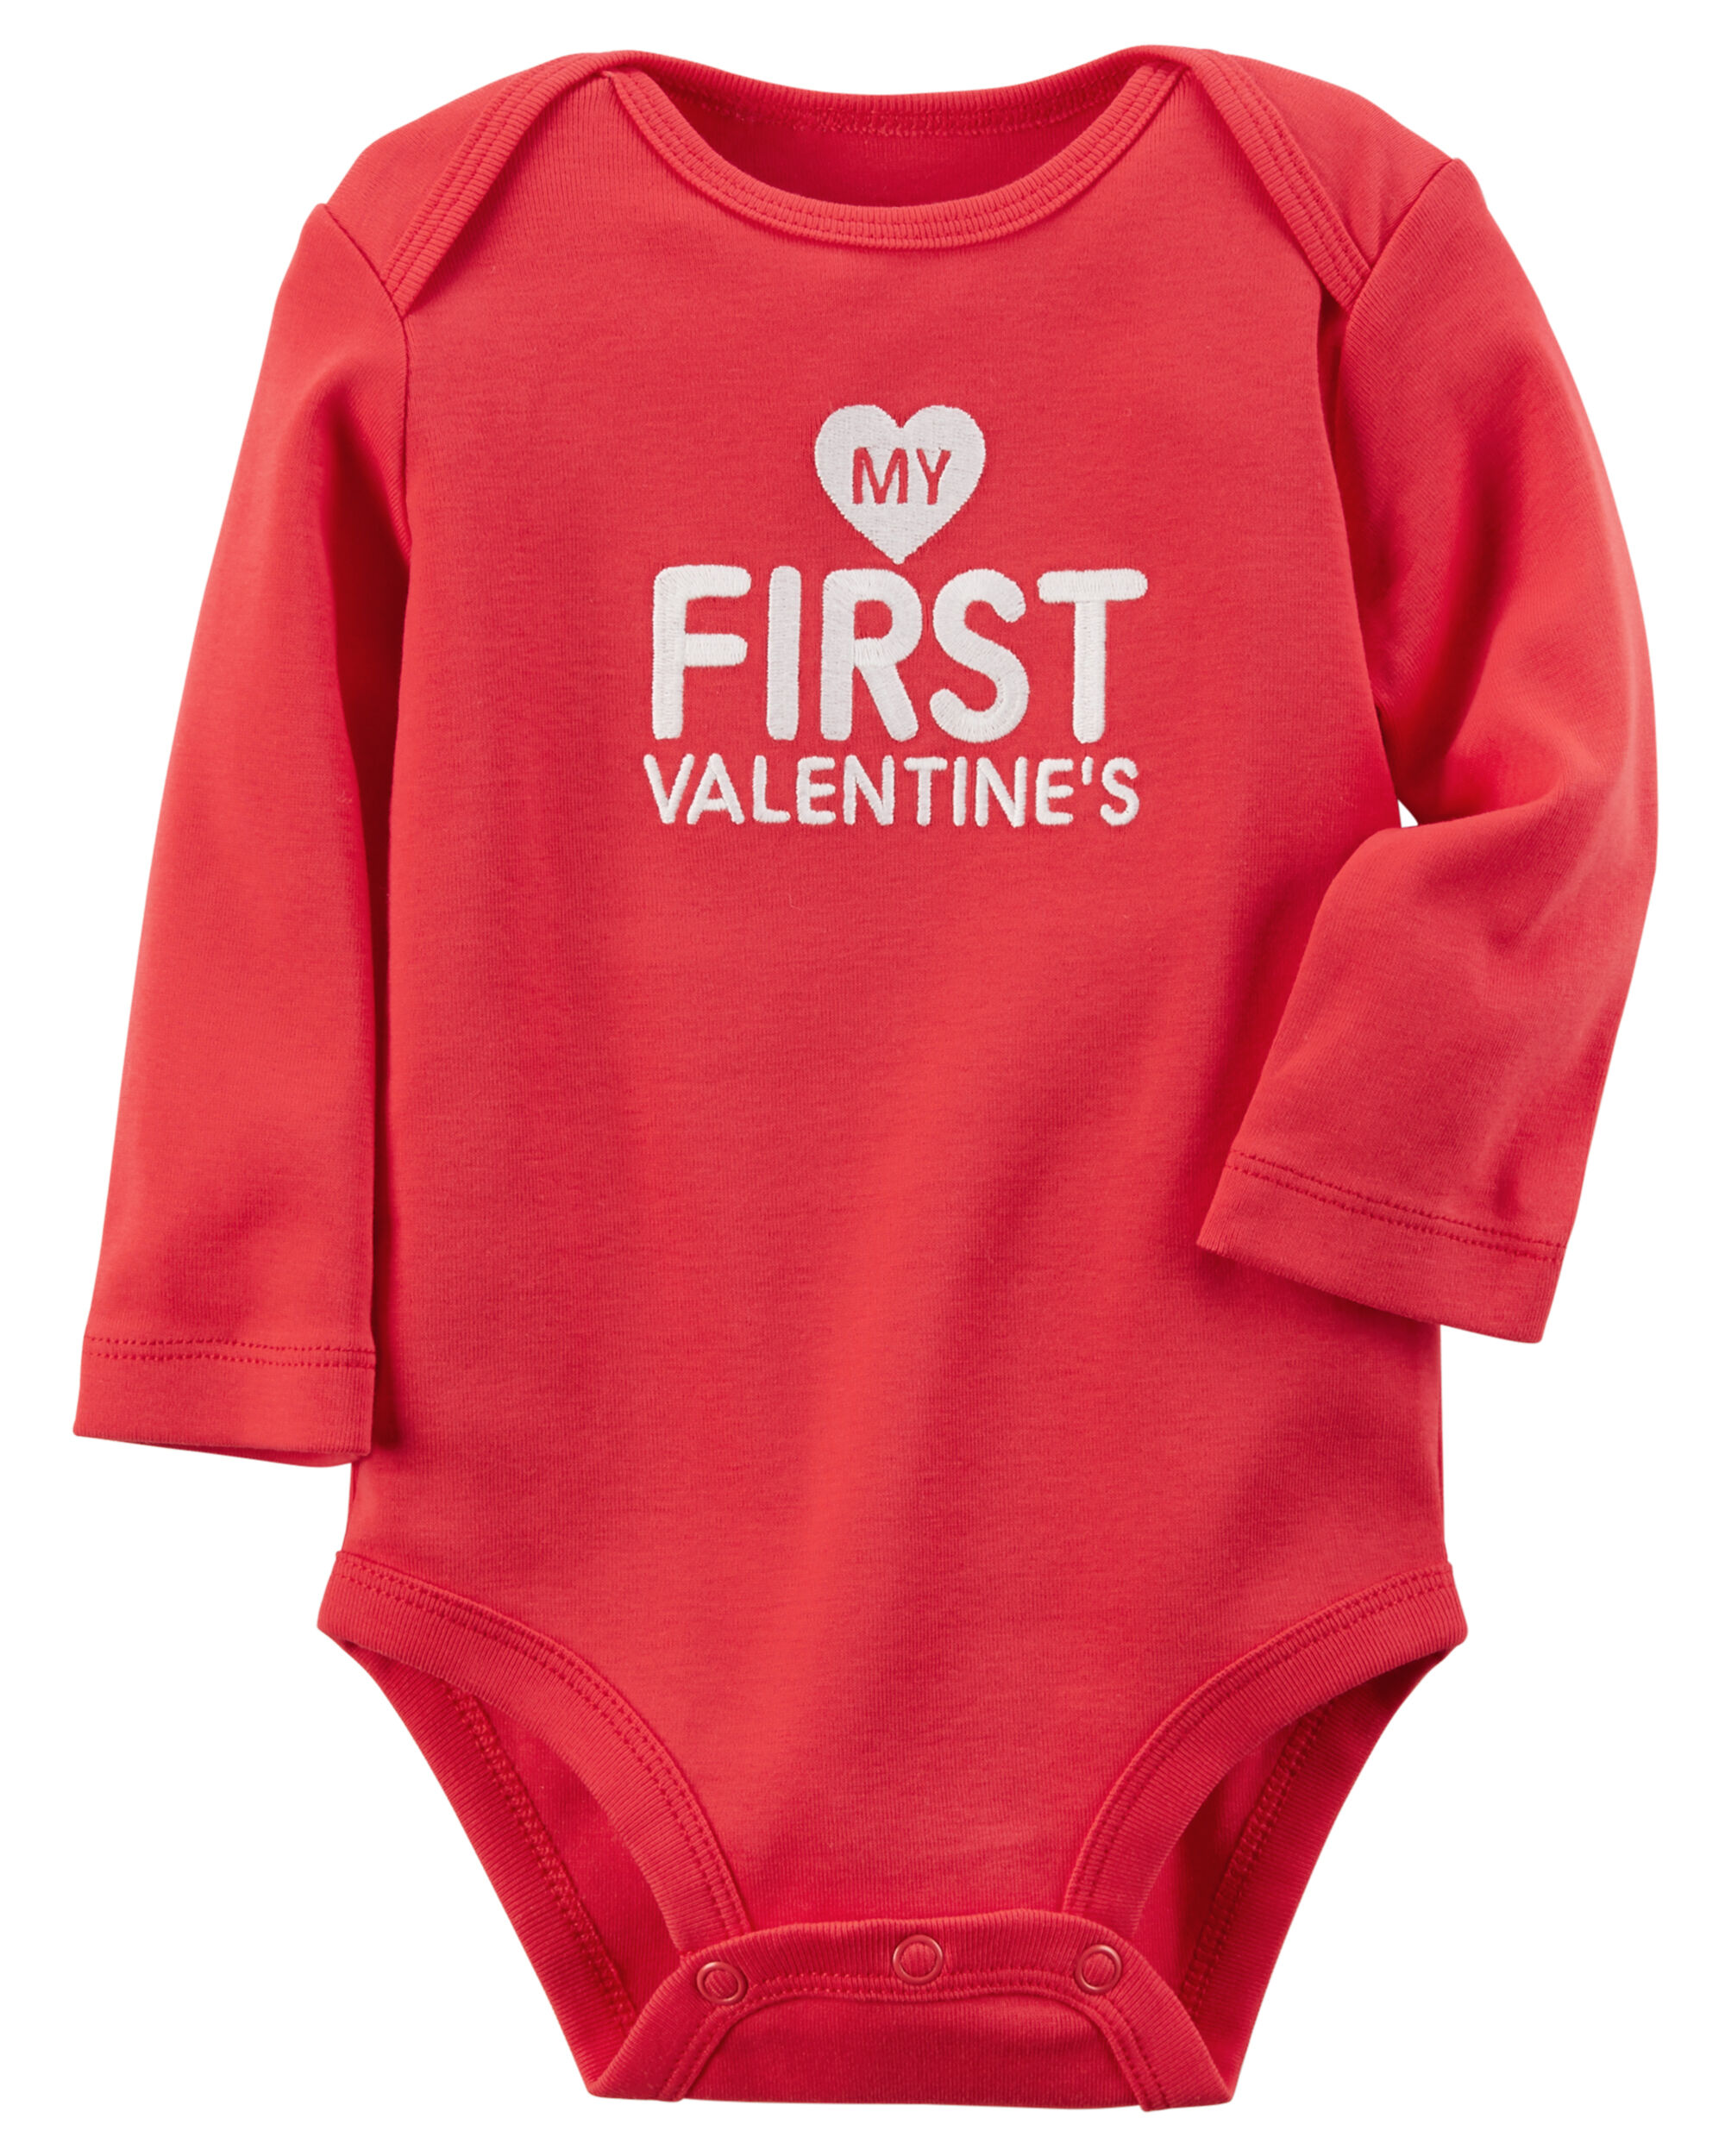 images my first valentines day collectible bodysuit - First Valentines Day